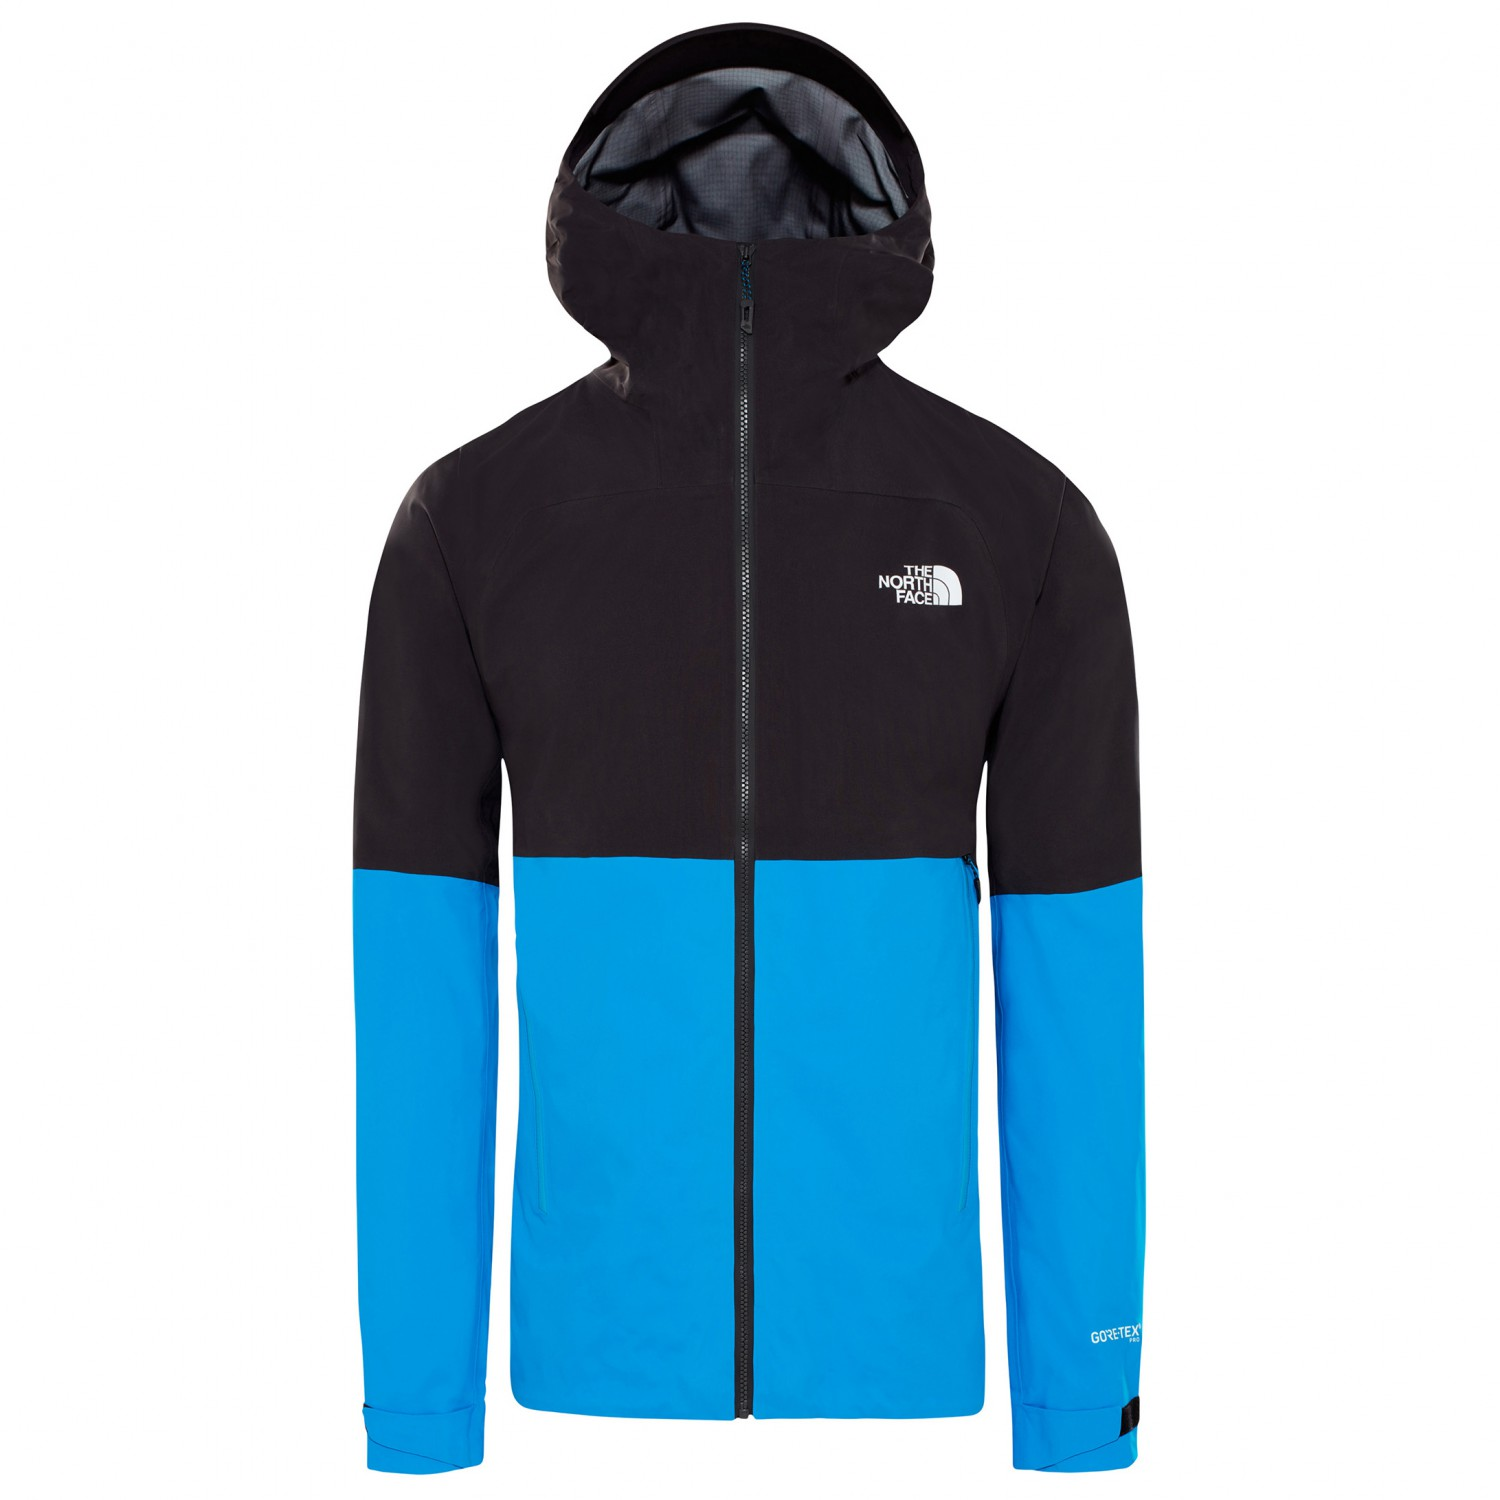 8b3d395b The North Face Impendor Shell Jacket - Waterproof jacket Men's ...